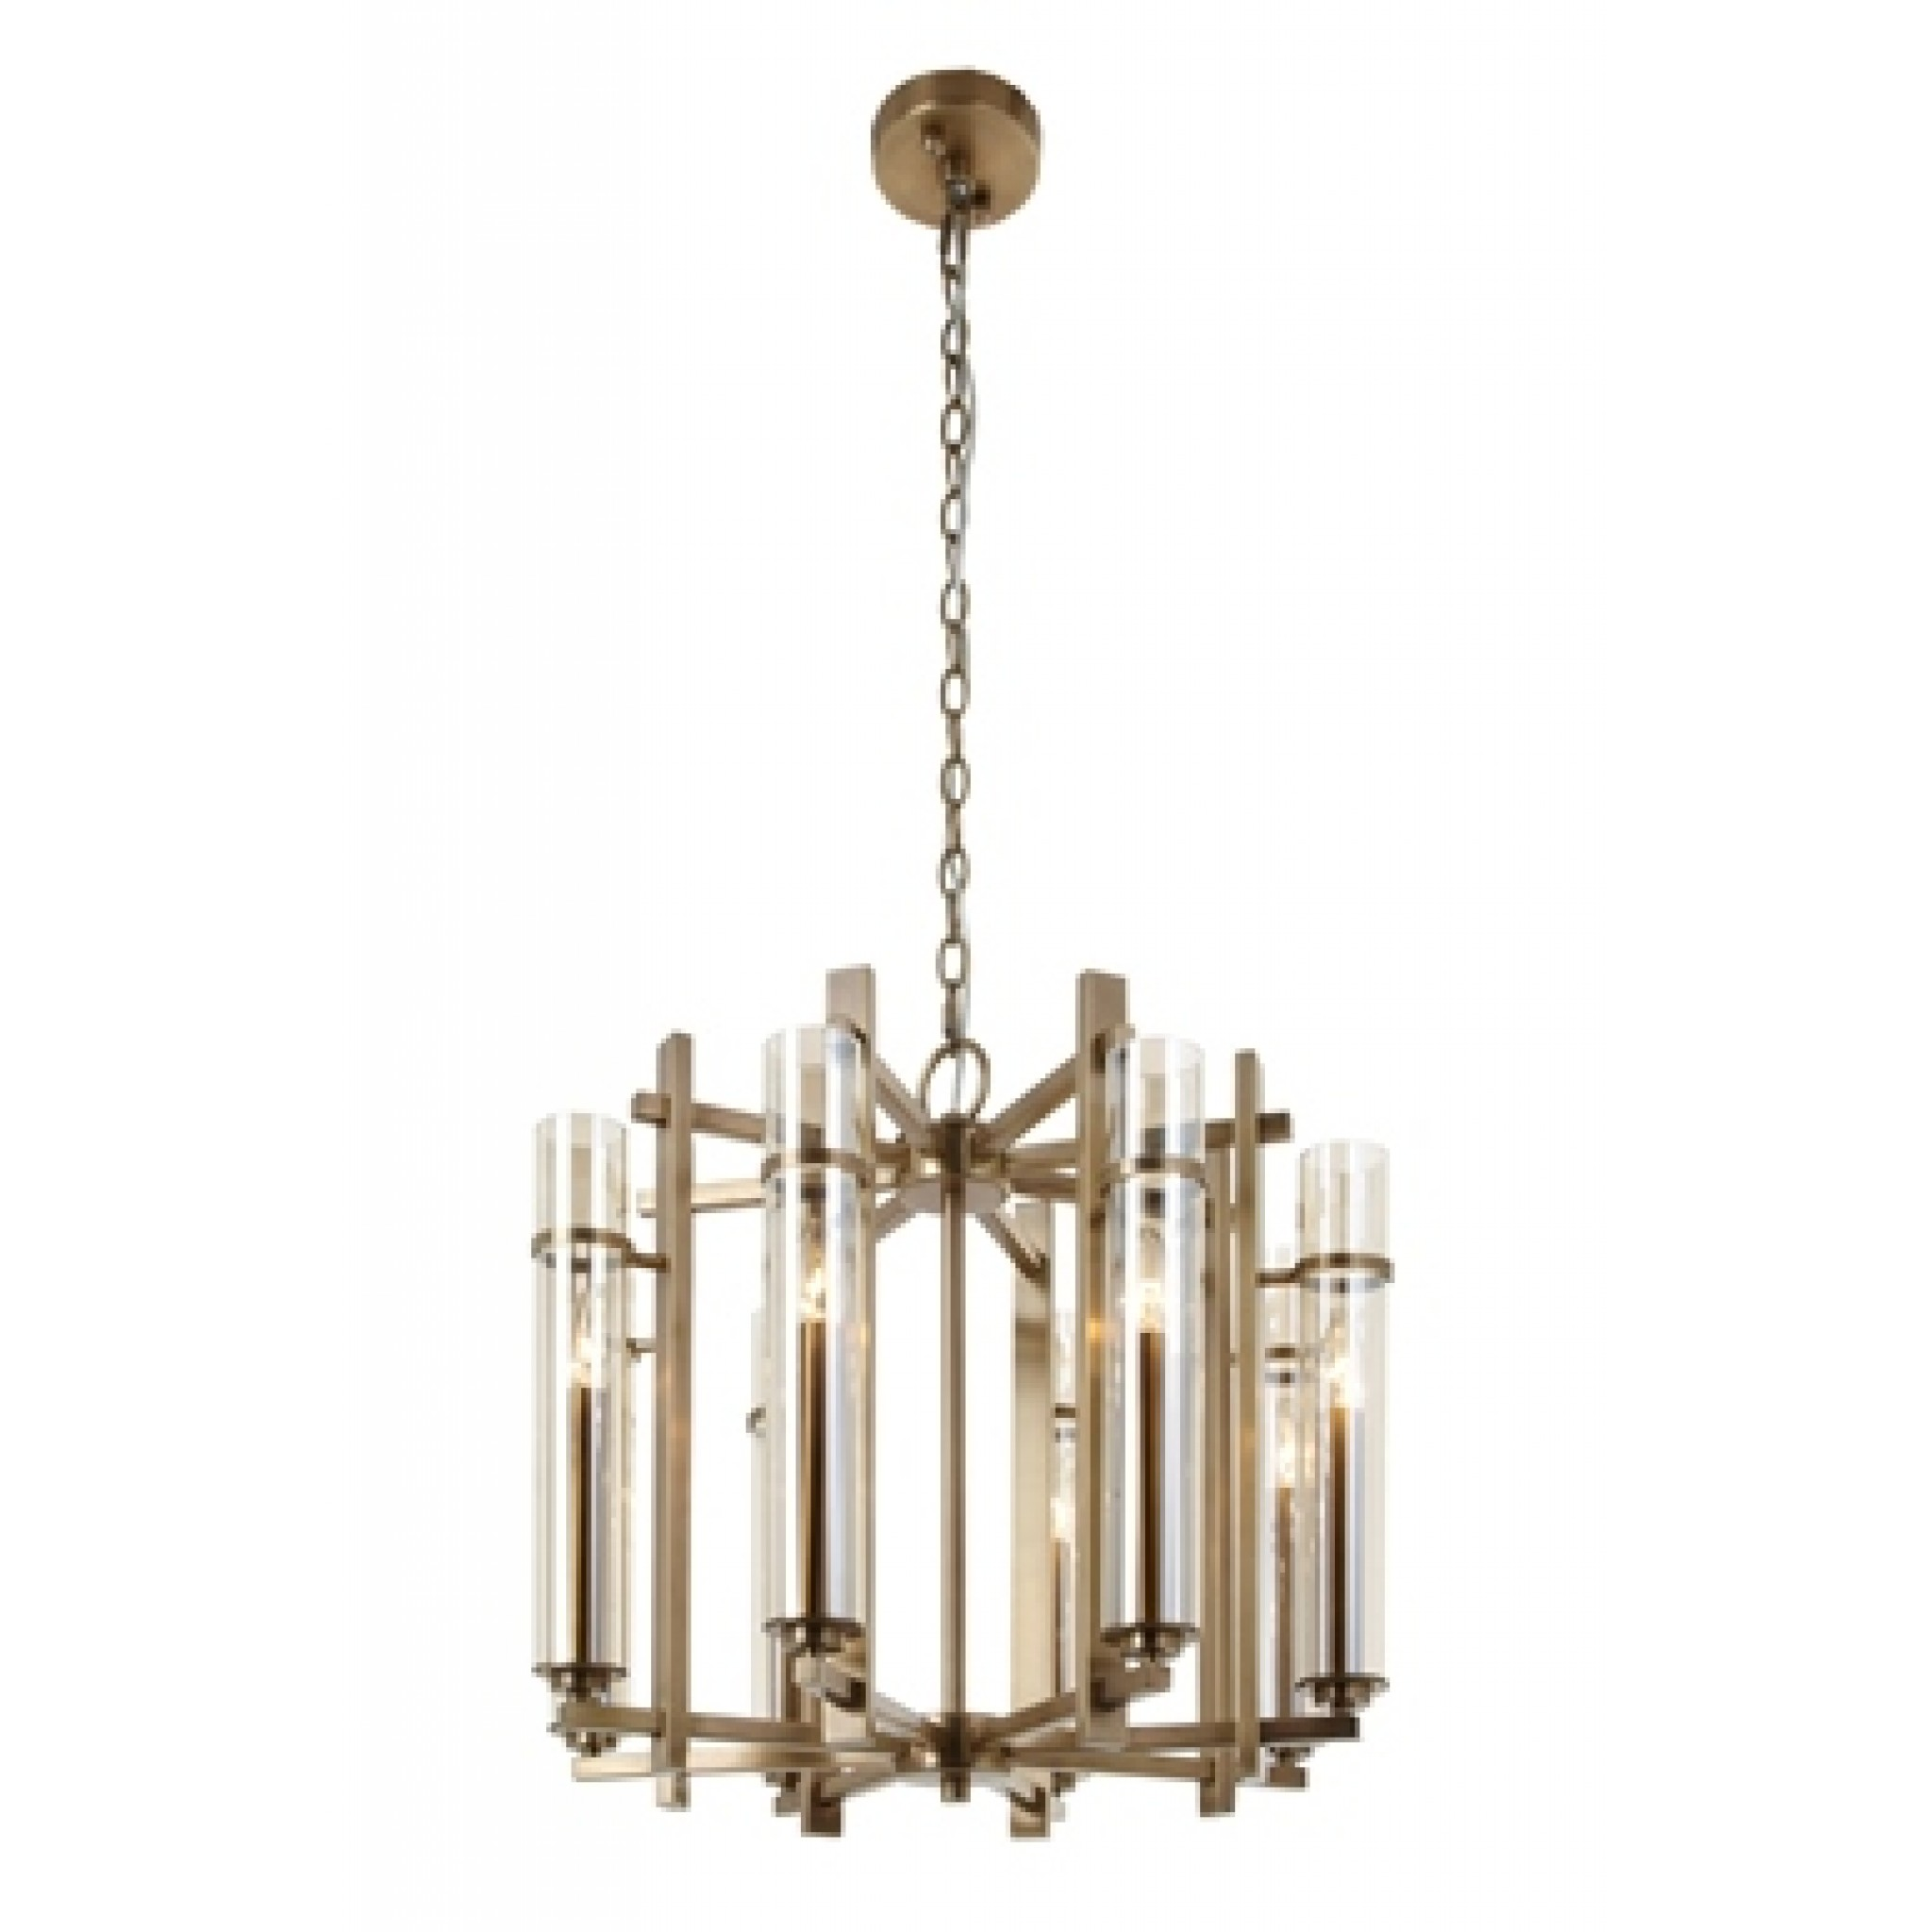 RV Astley Louis Antique Brass 8 Light Chandelier